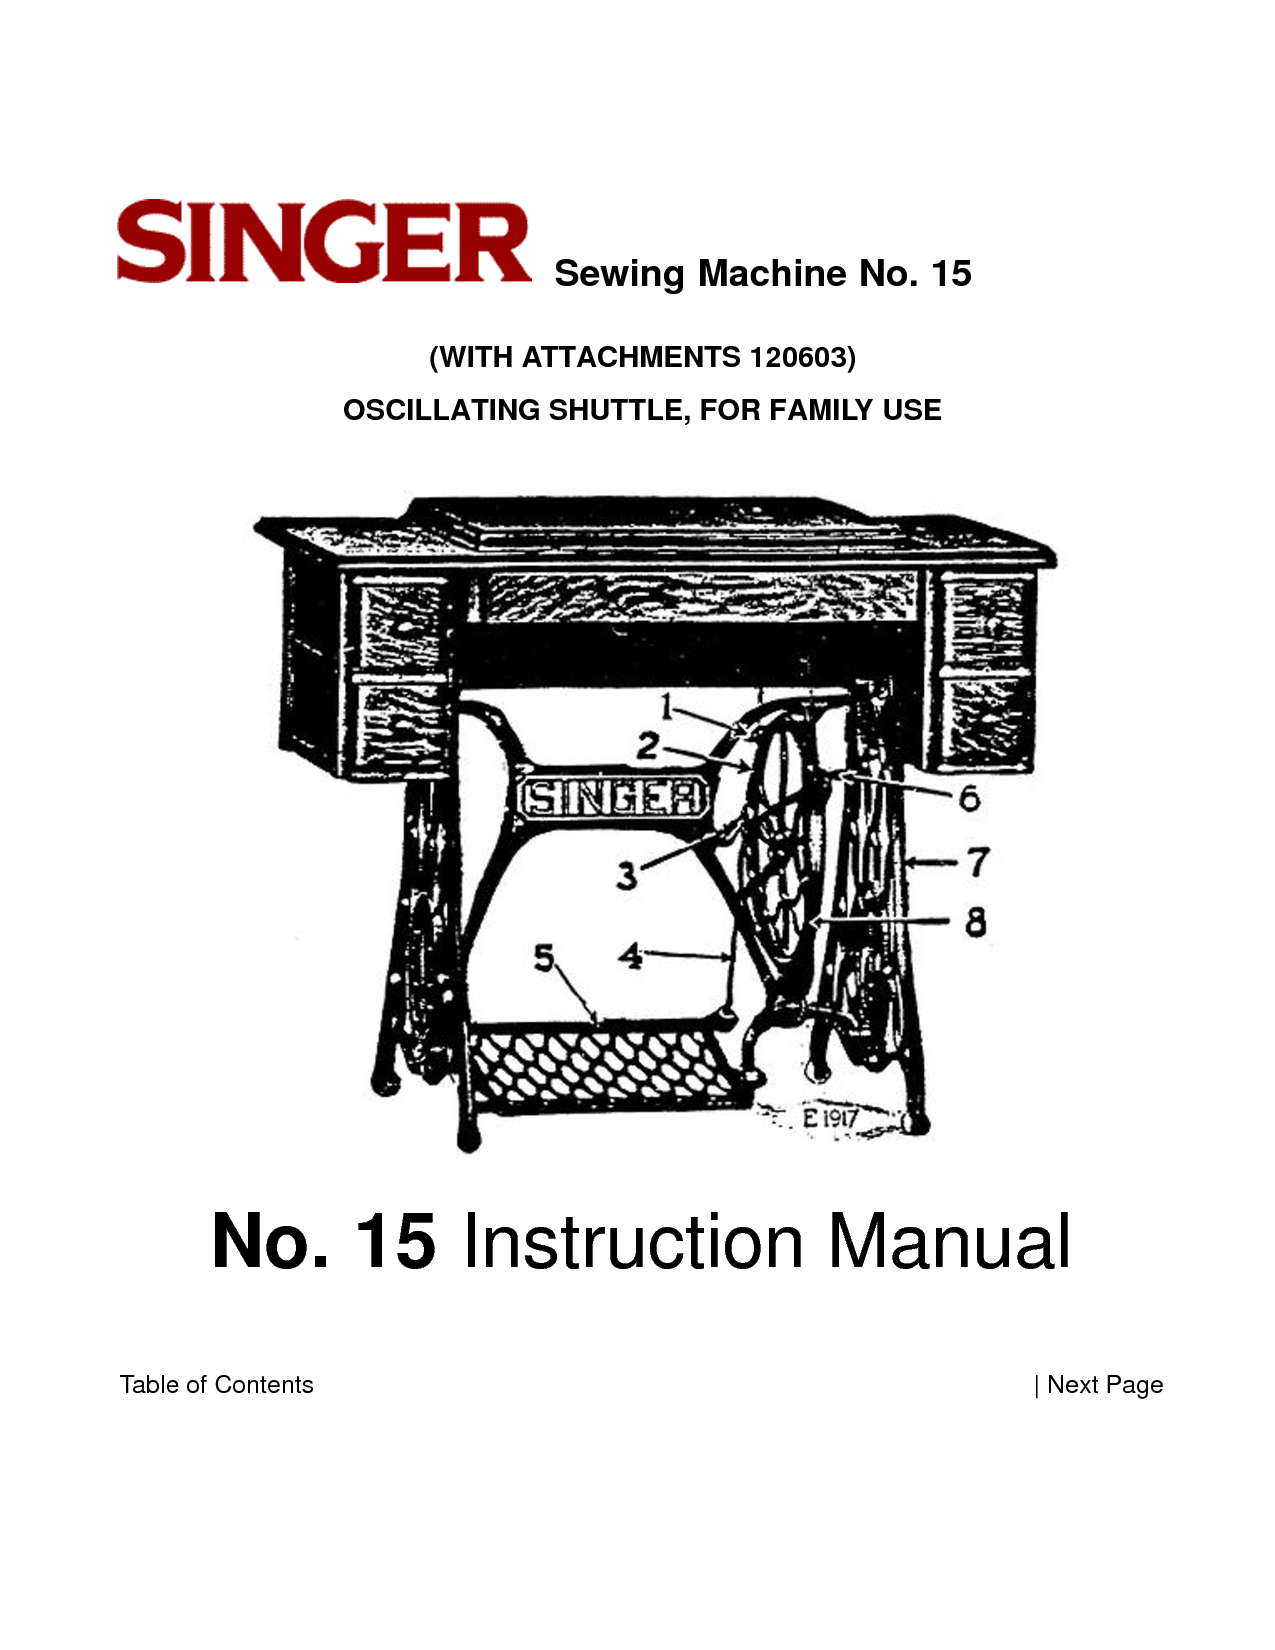 sewing machine parts | Singer Sewing Machine User Manual and Parts List No  15